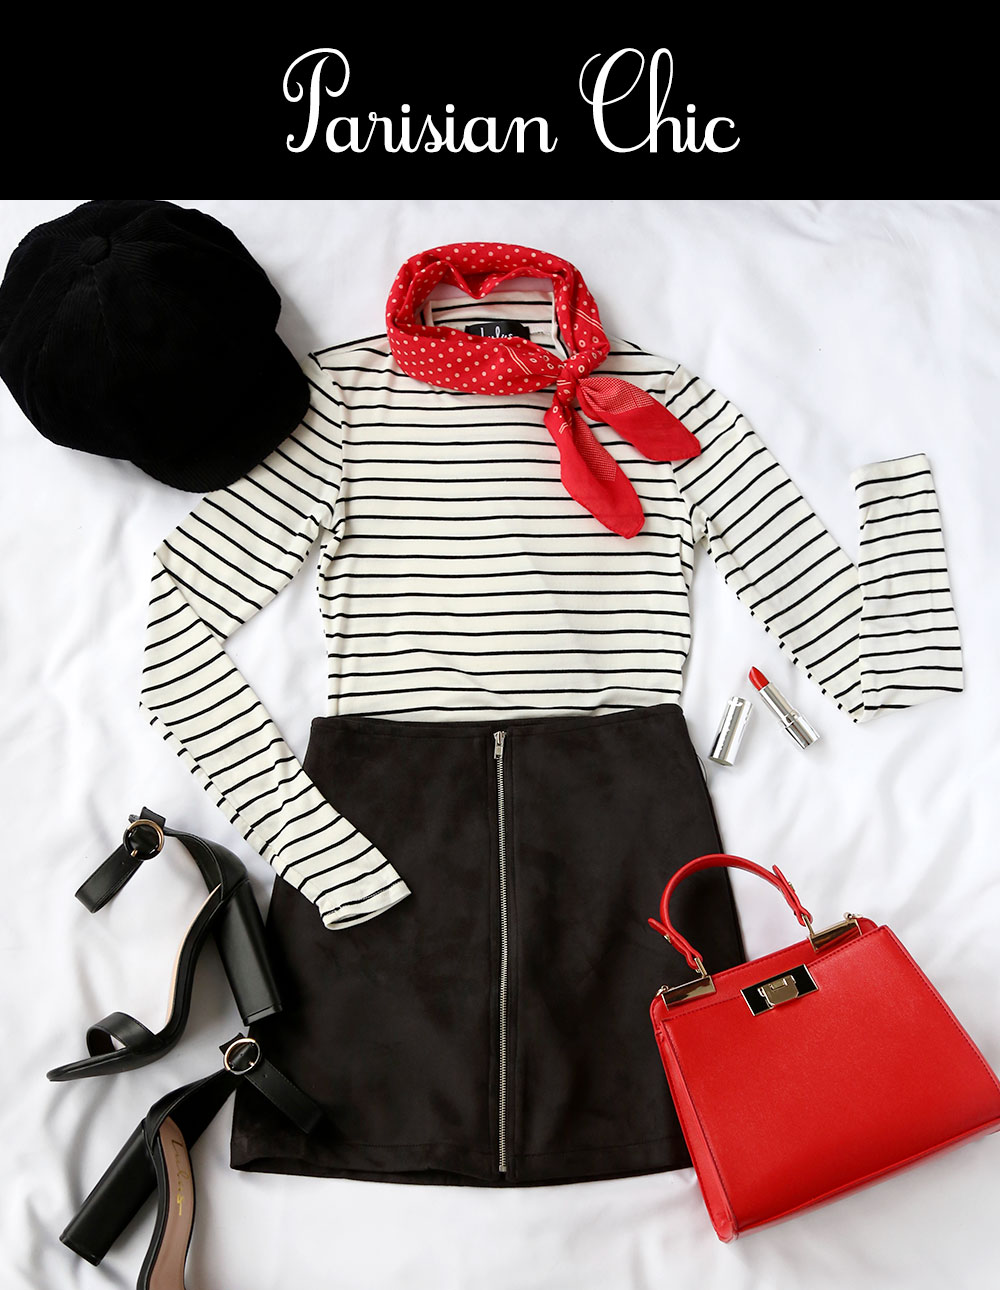 Halloween Costumes: Parisian Chic